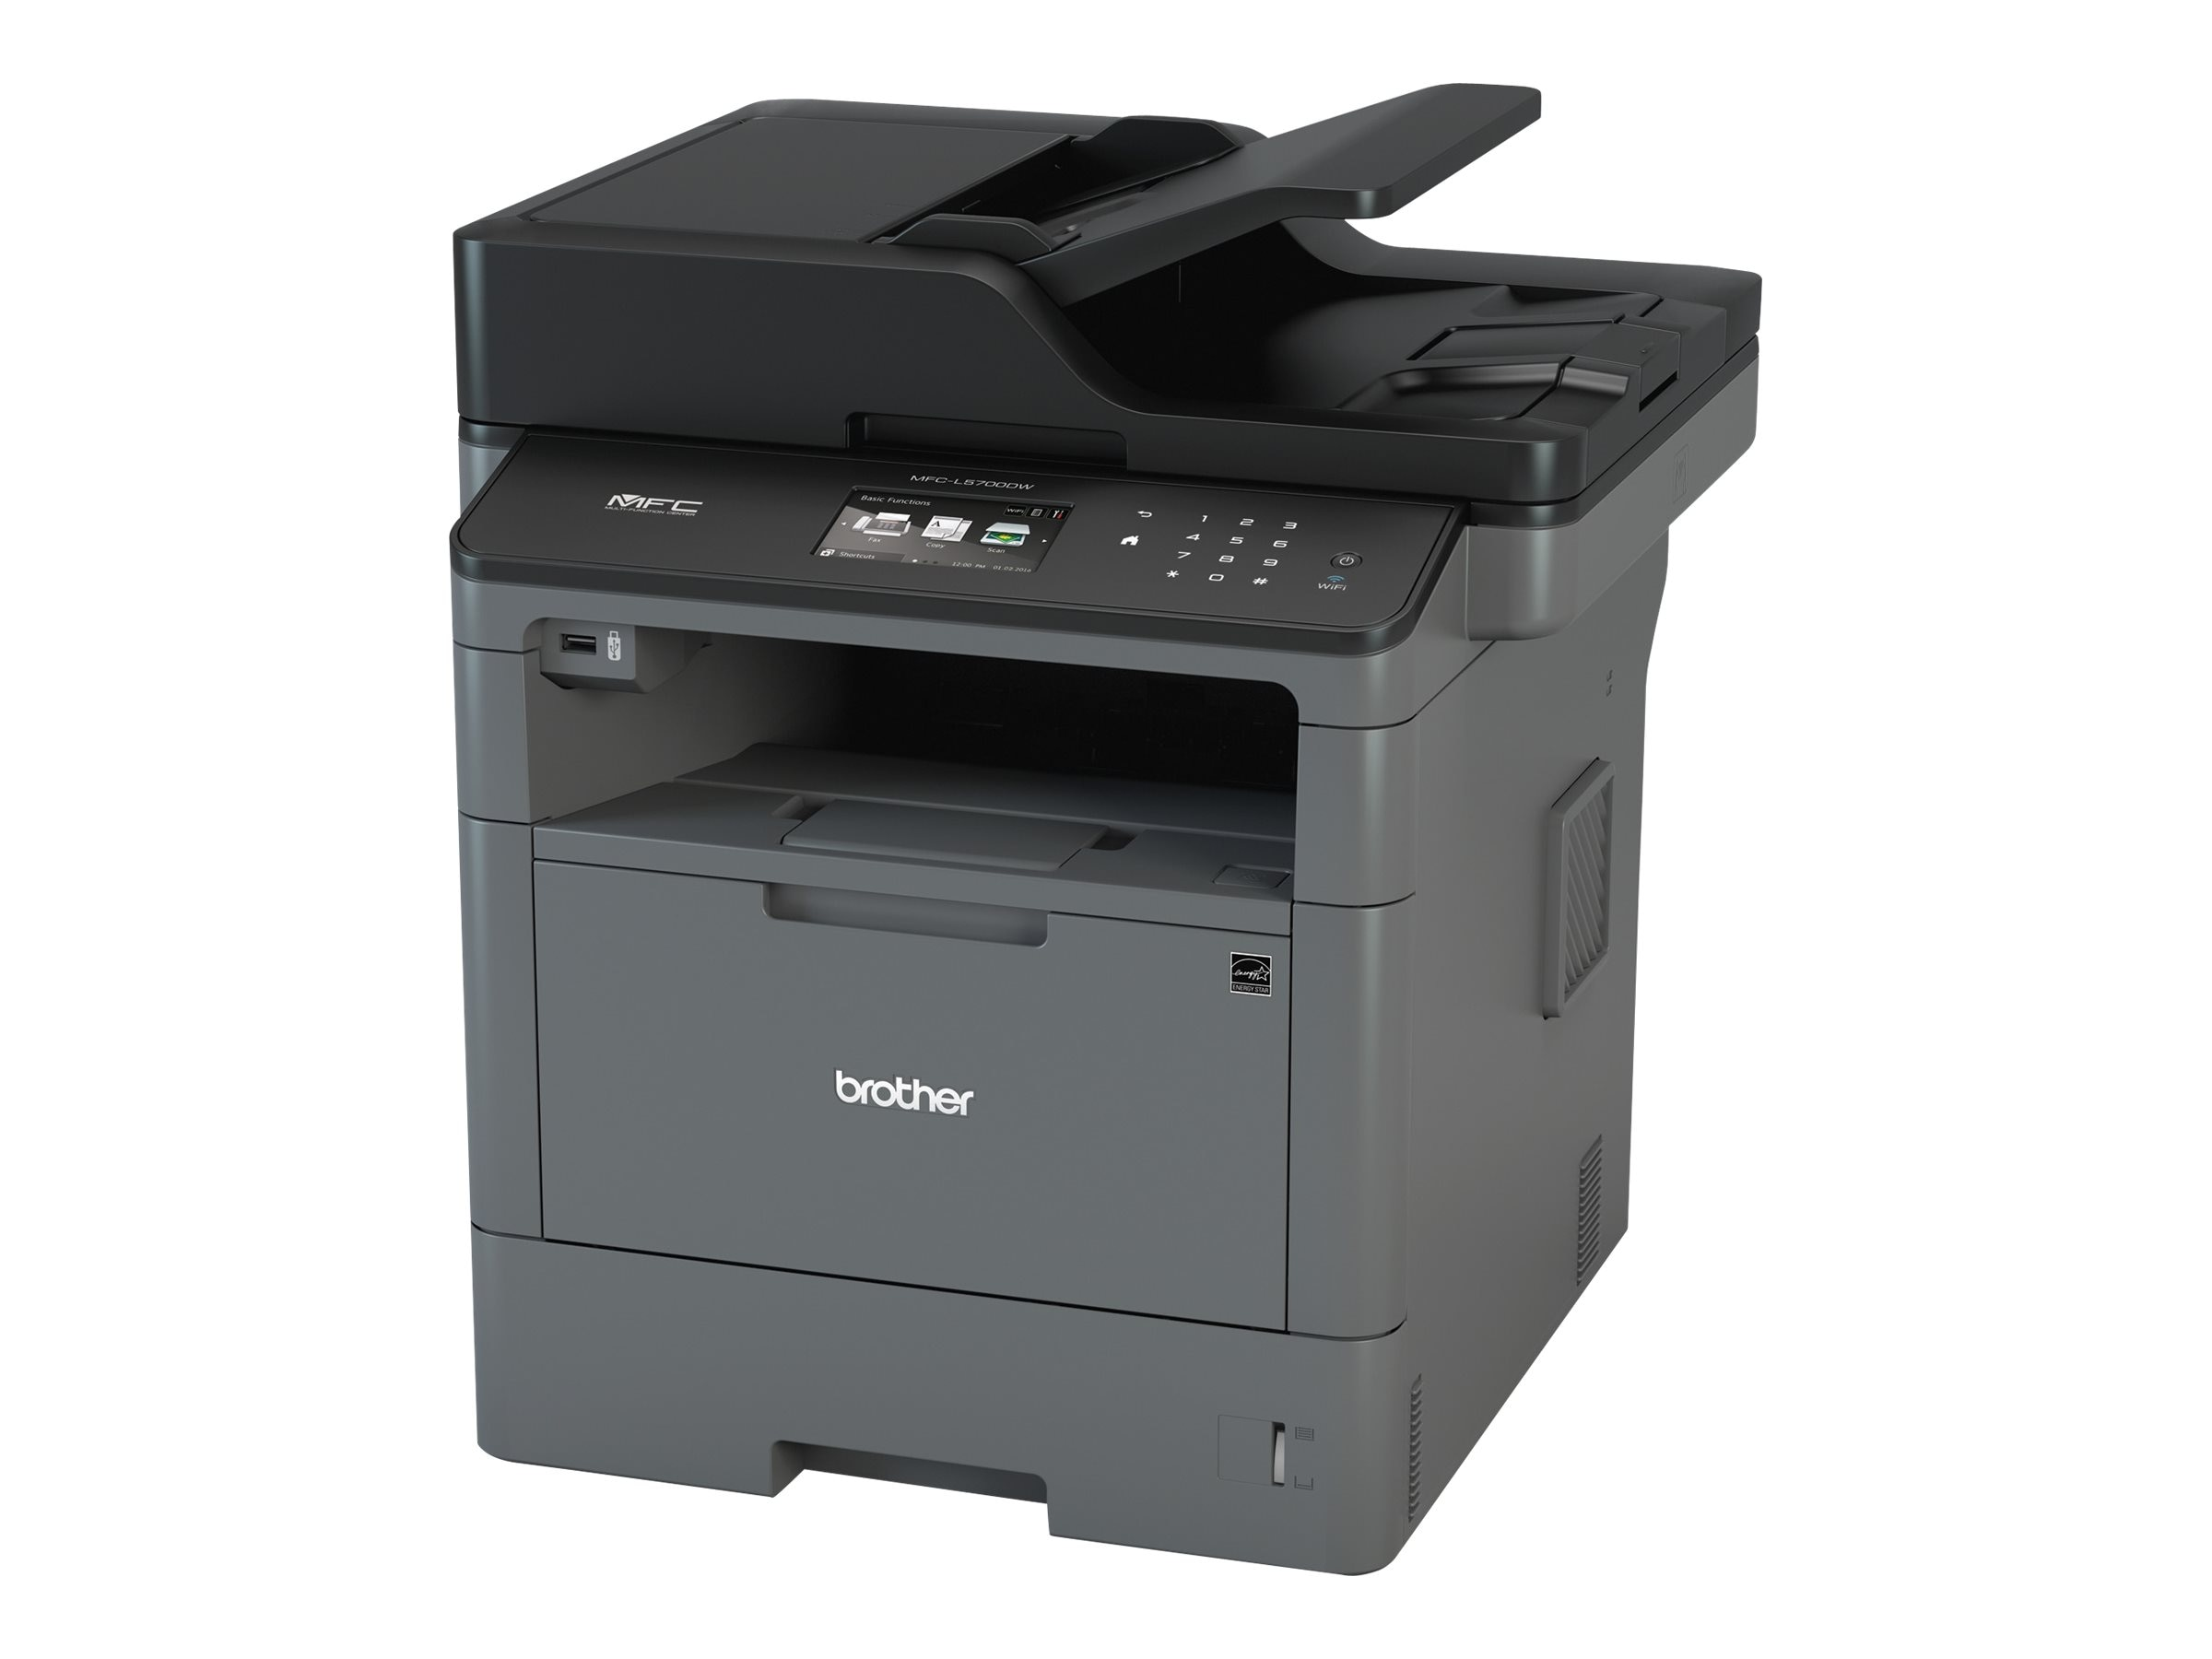 Brother MFC-L5700DW Image 1